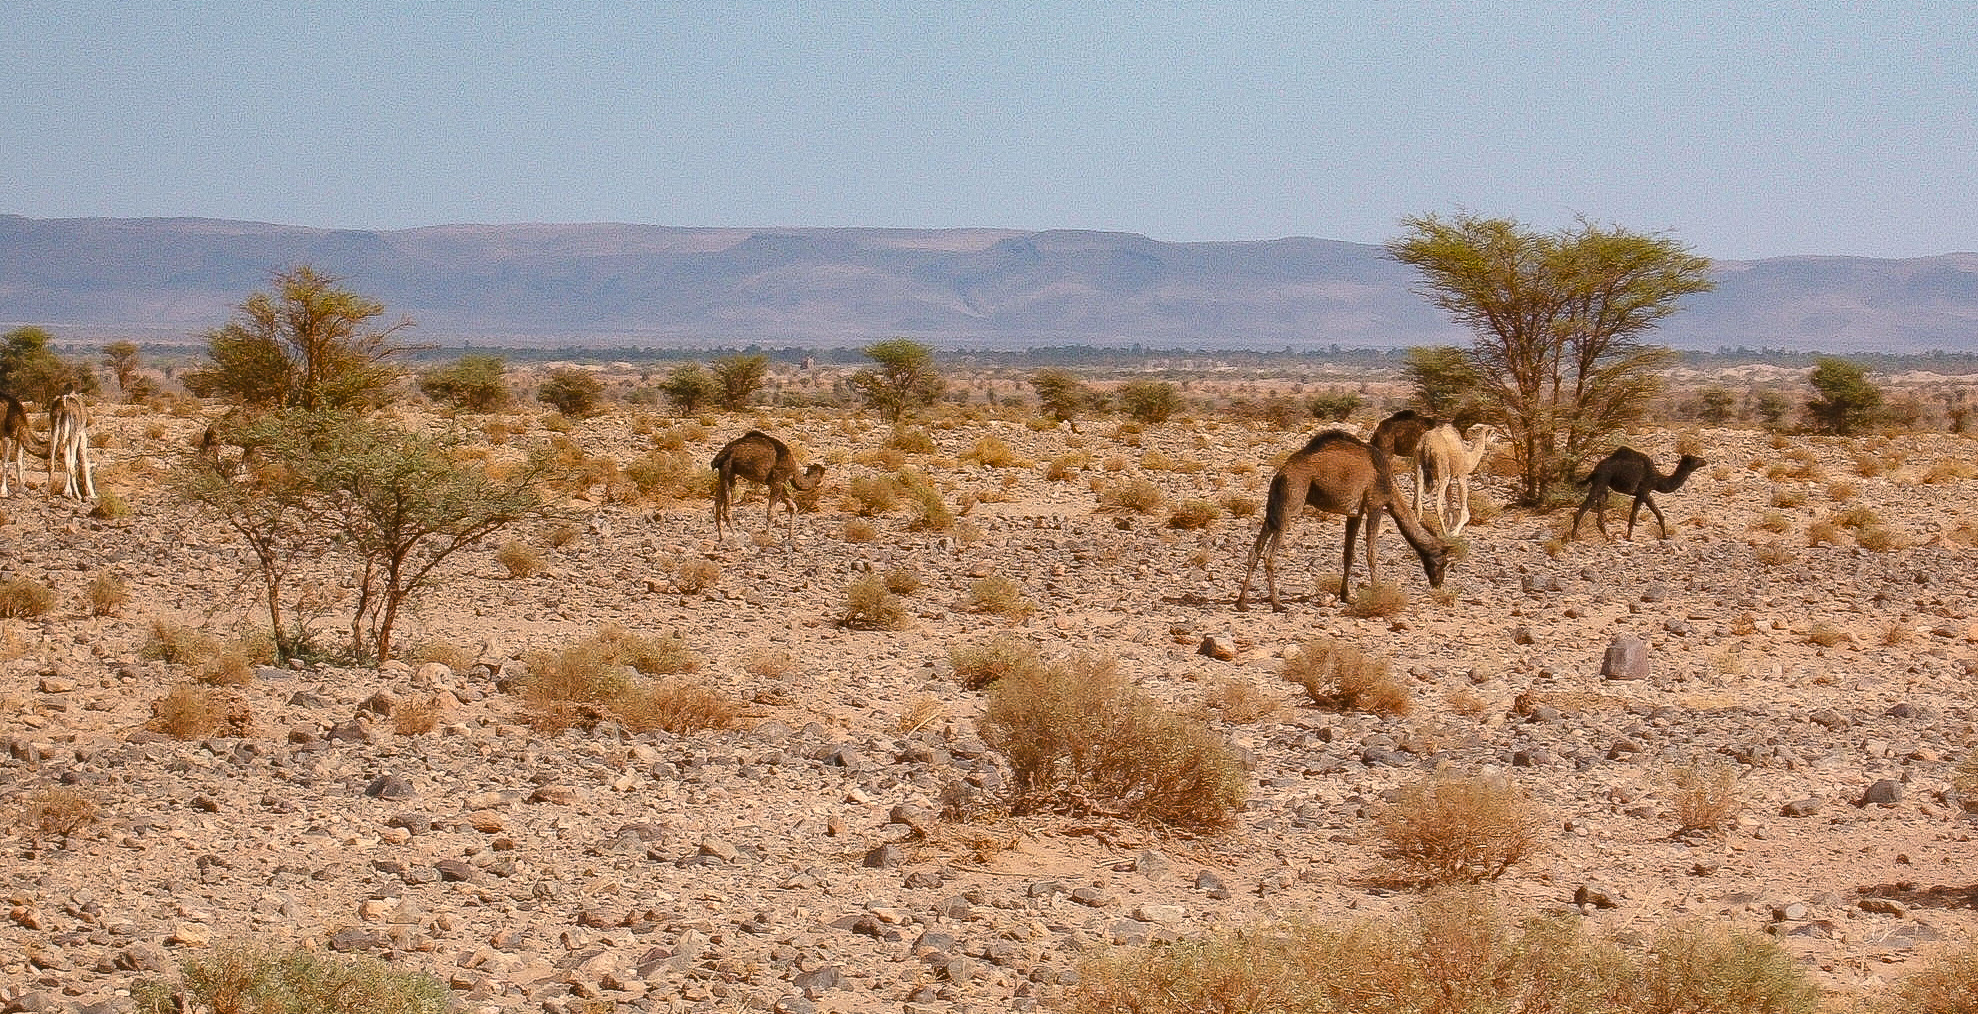 COULD THIS BE JIMI THE CAMEL AND HIS MATES?